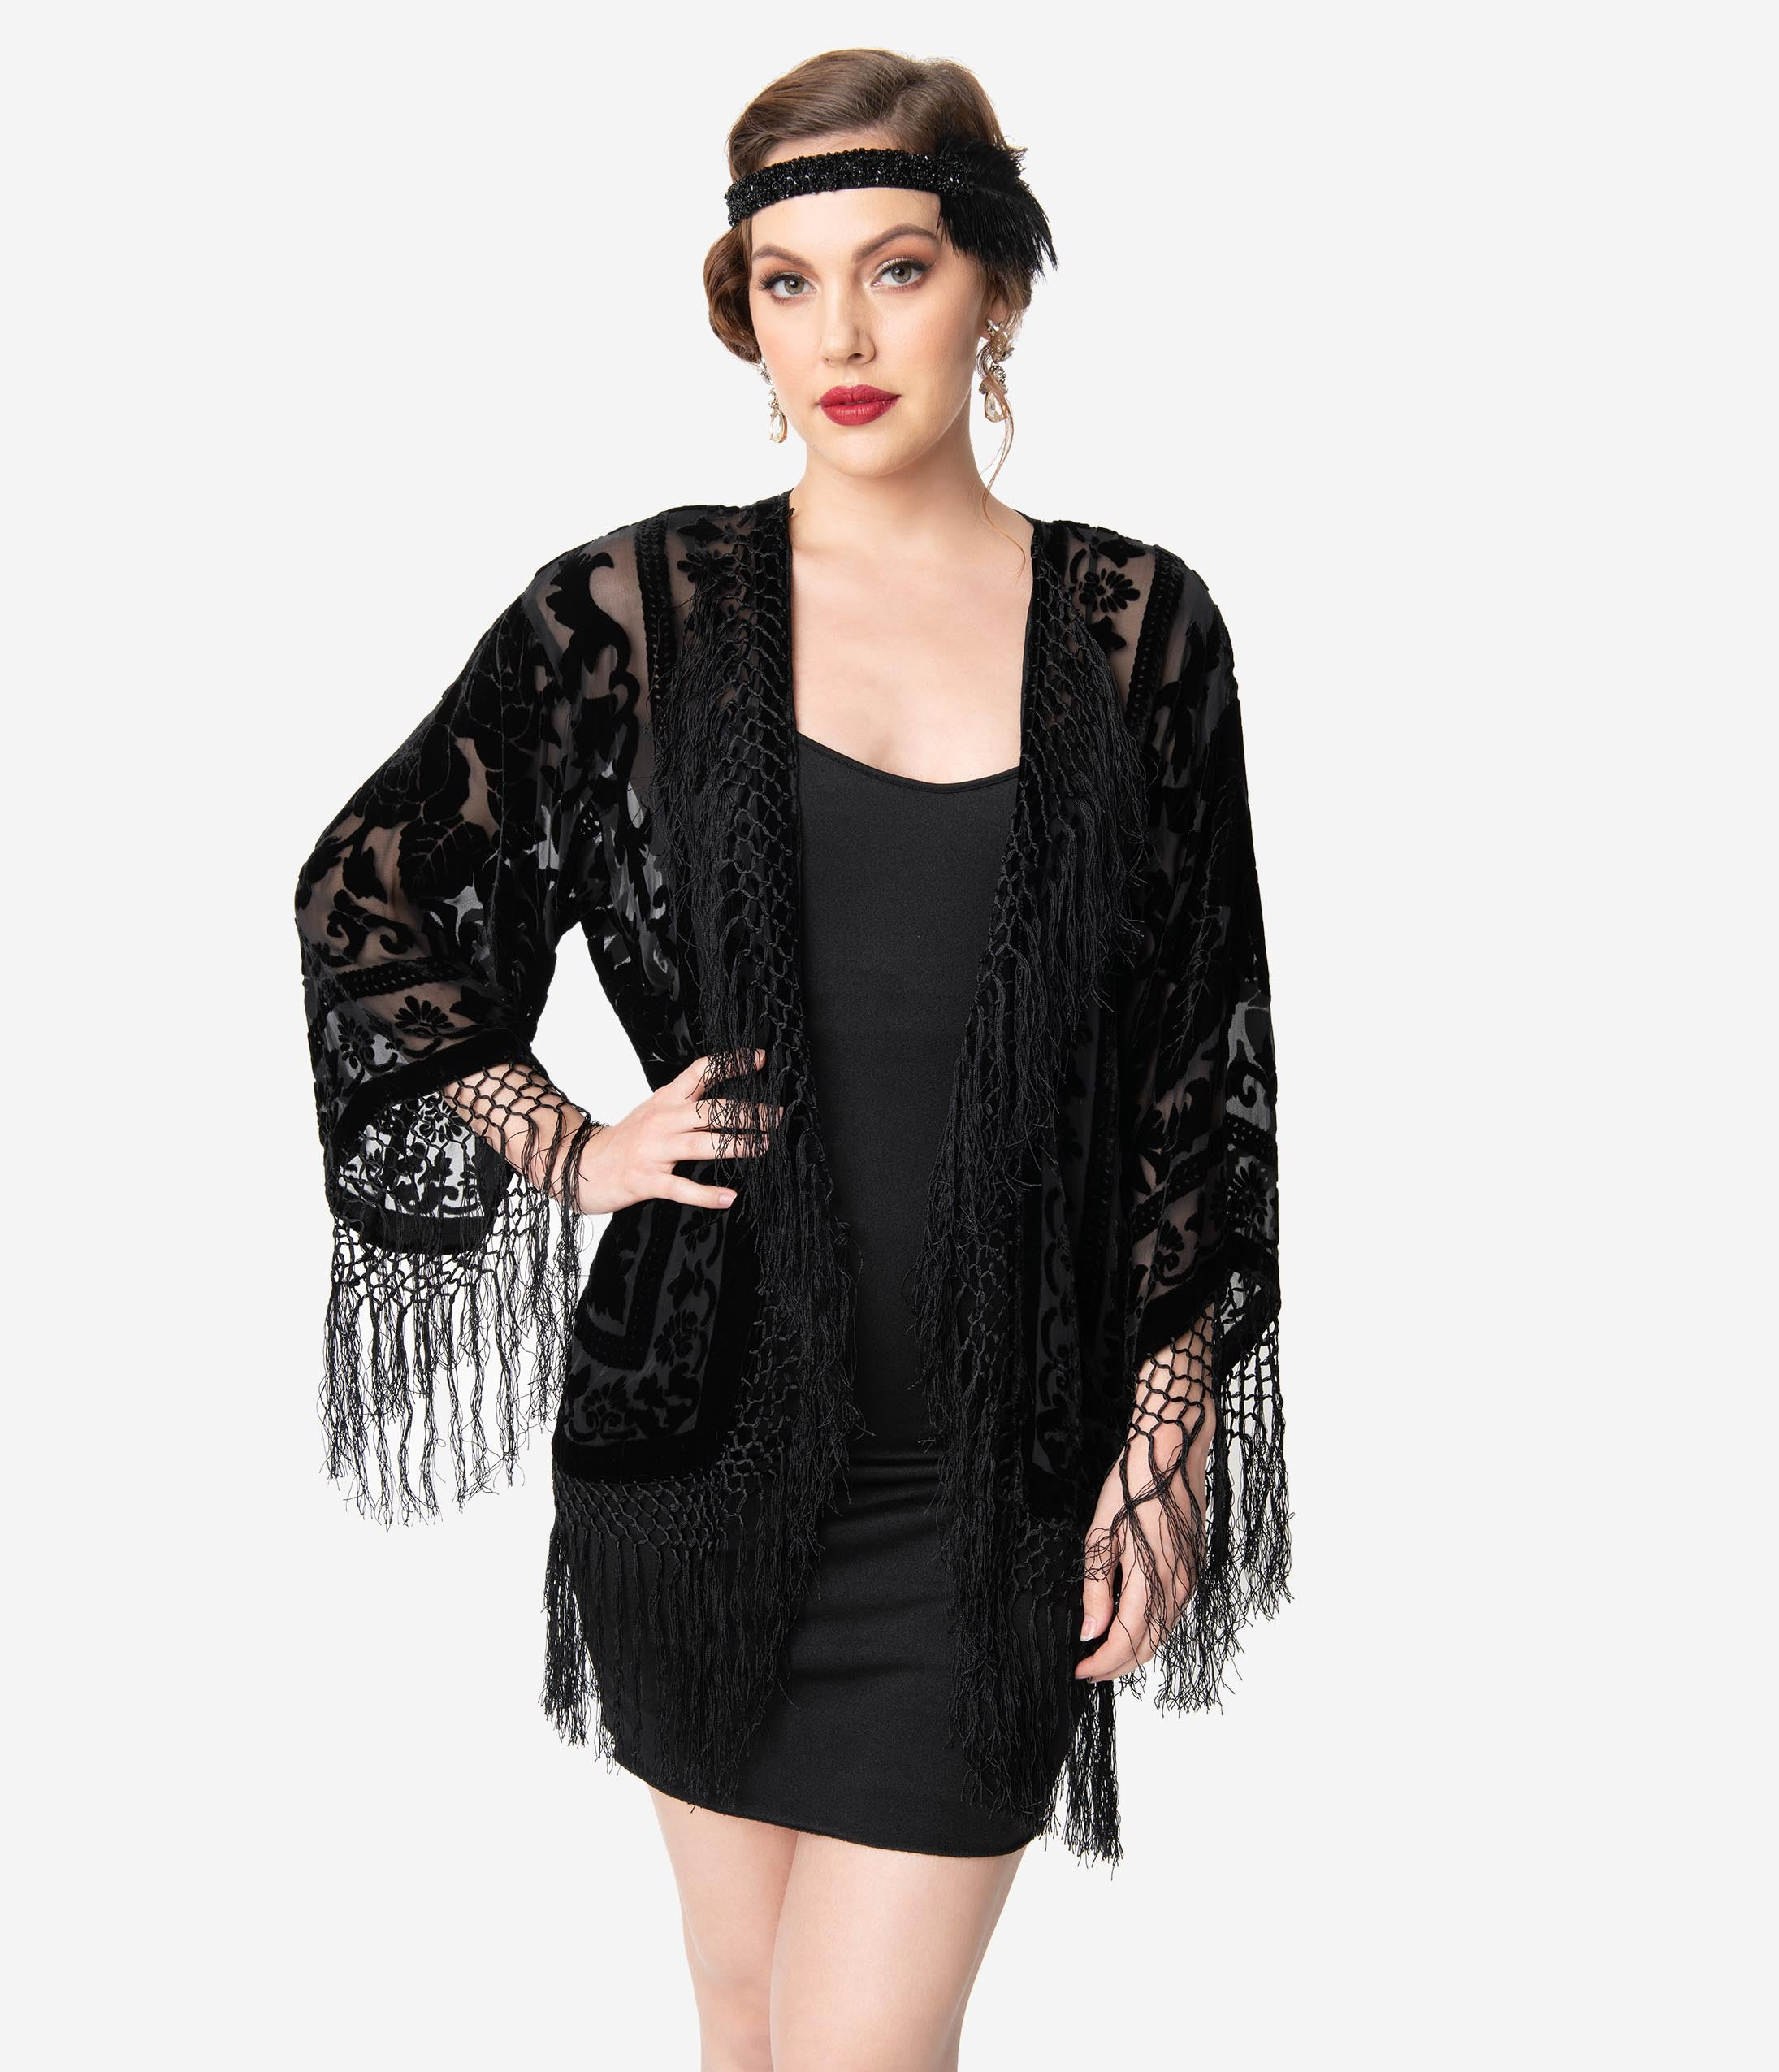 Vintage Coats & Jackets | Retro Coats and Jackets Vintage Style Black Devore Velvet Fringe Short Flapper Coat $148.00 AT vintagedancer.com